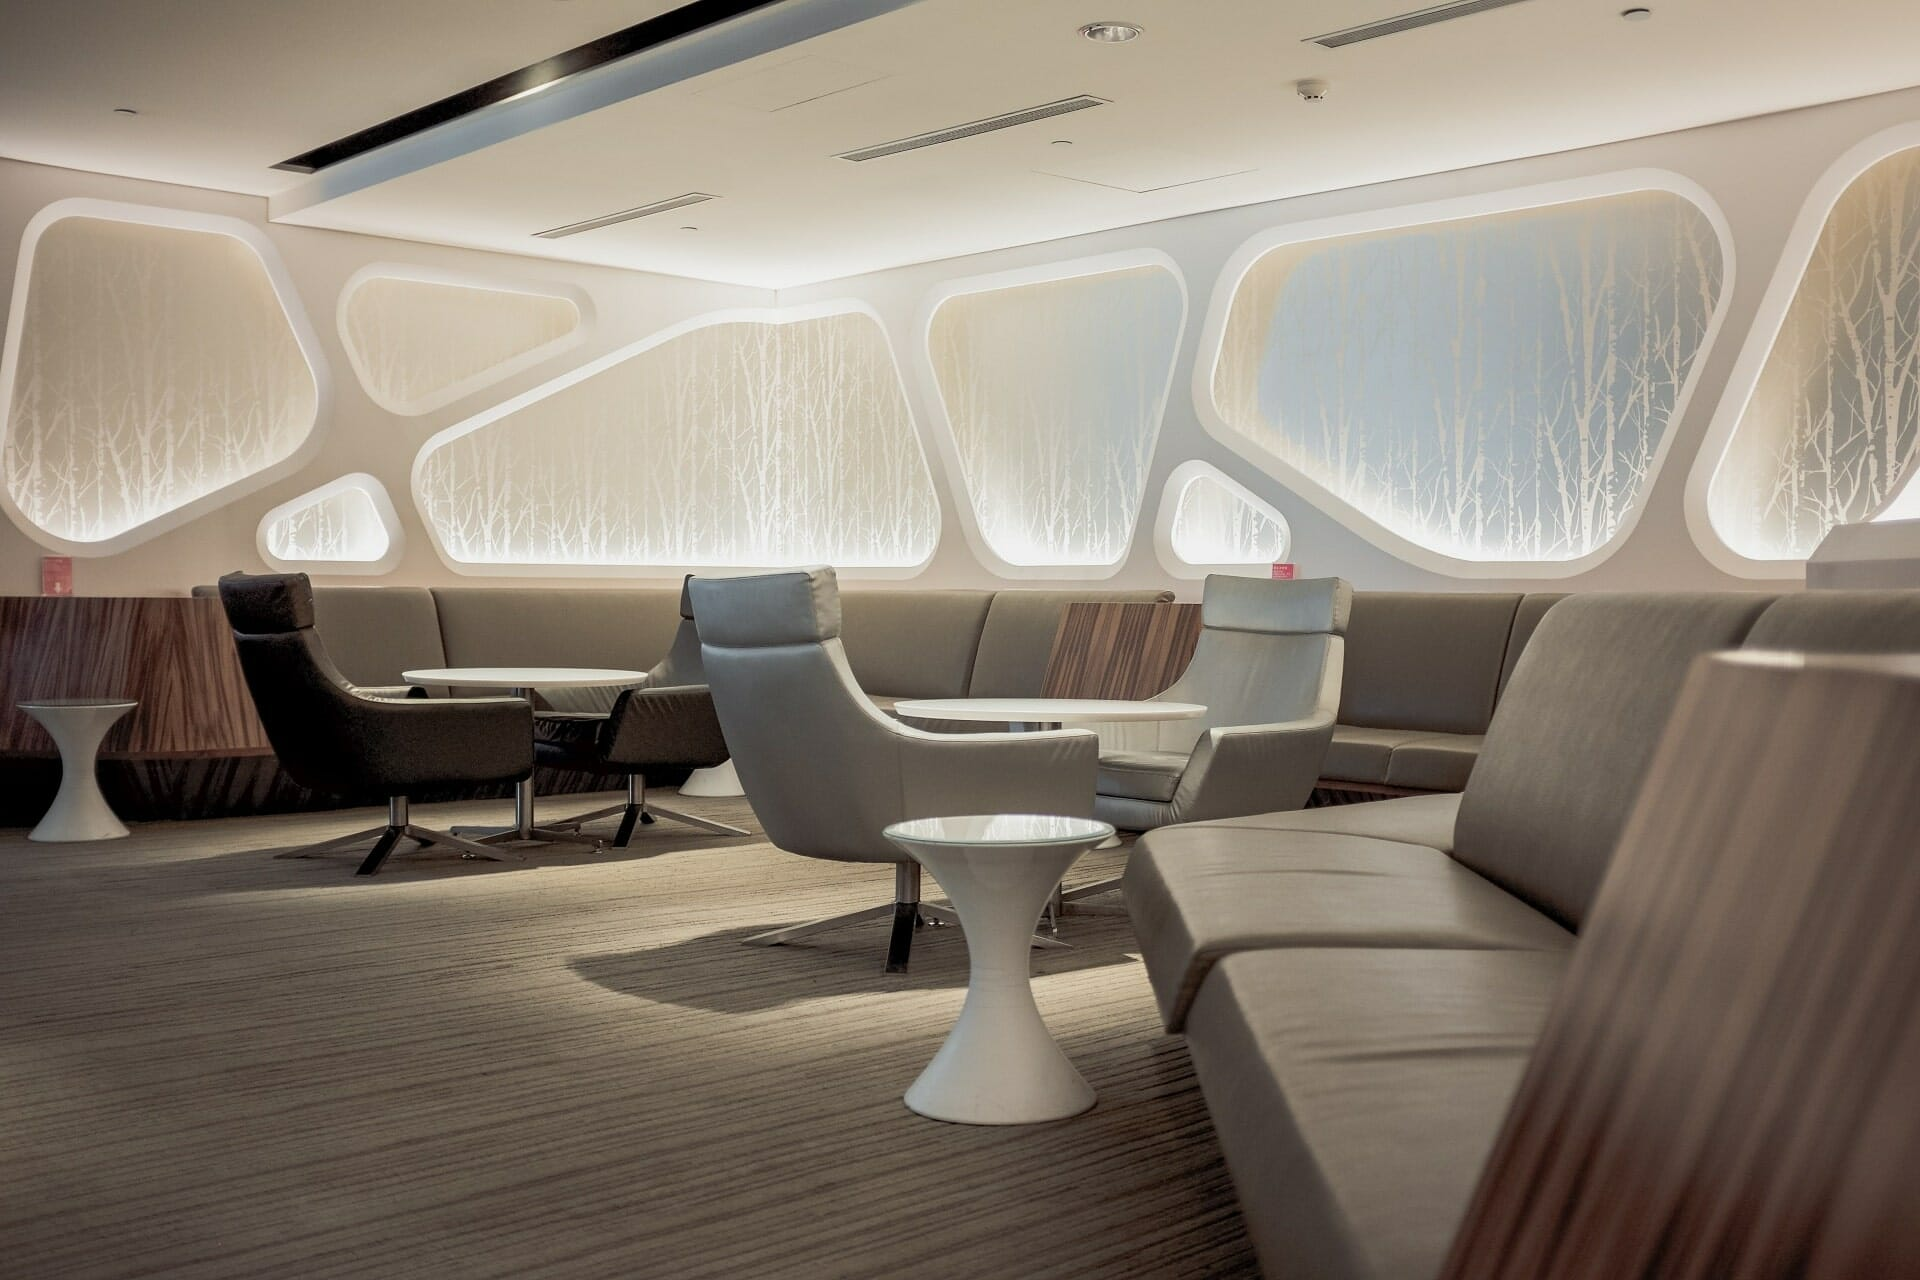 Overview of lounge amenities from popular us airline carriers